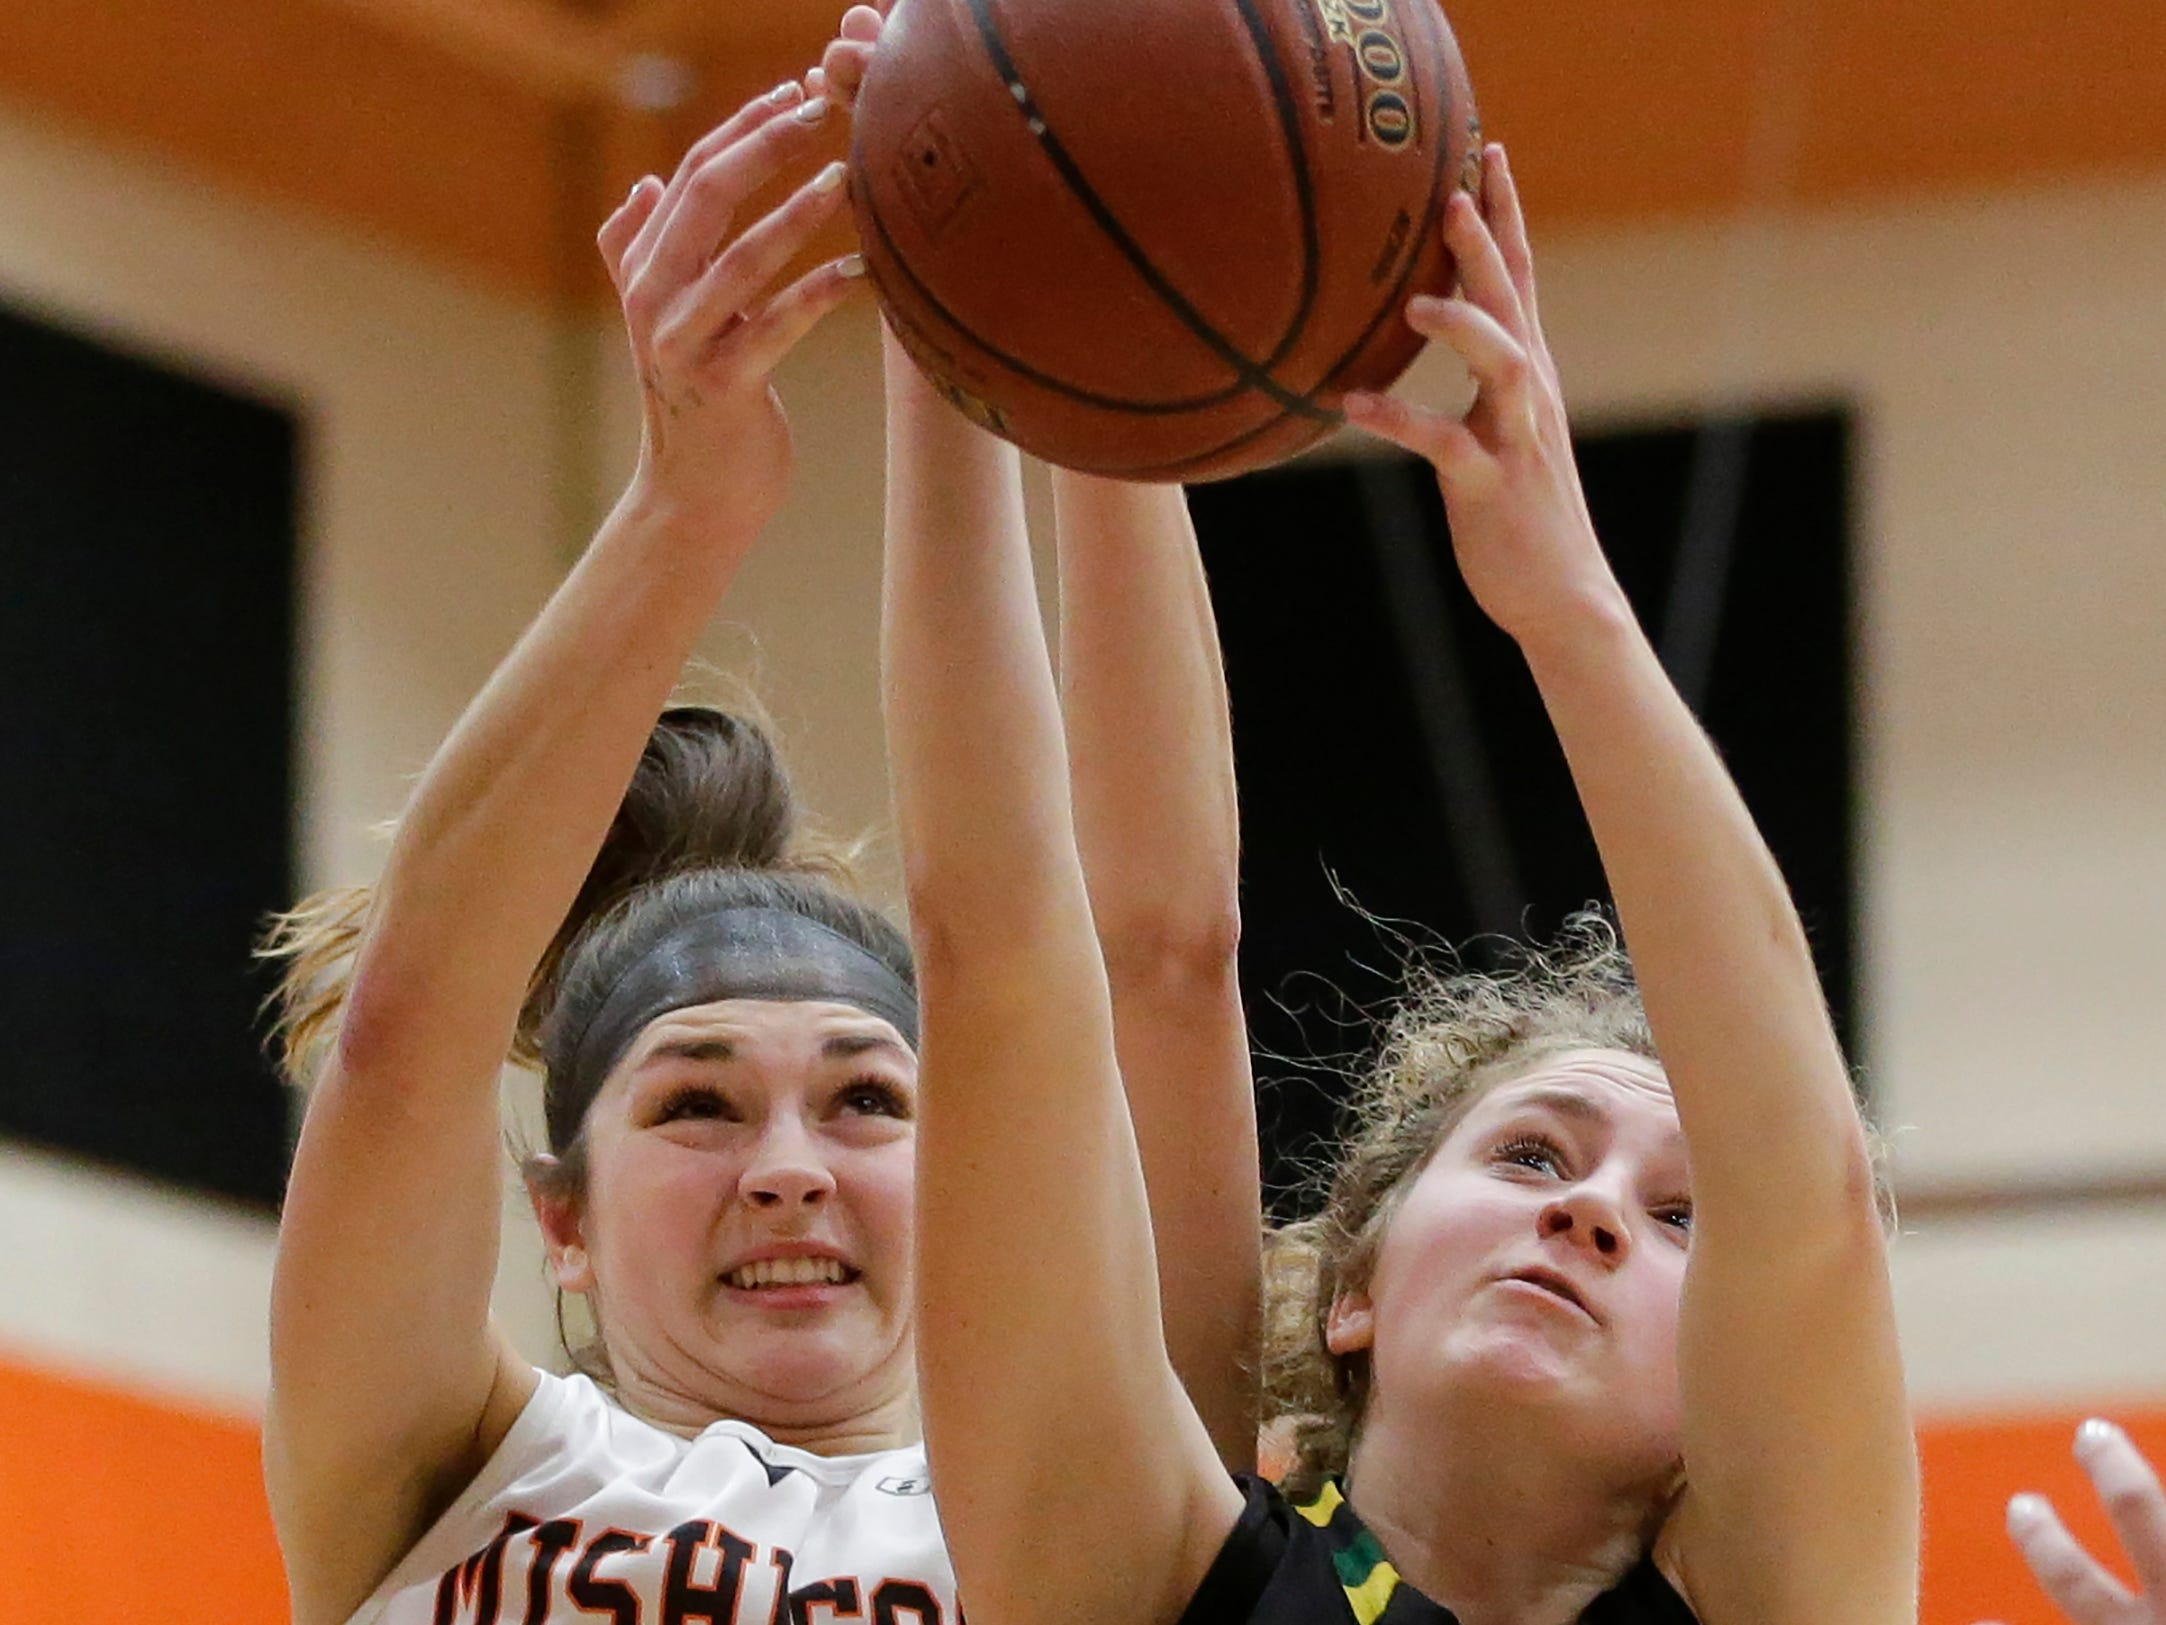 Sheboygan Area Lutheran's Emma Egbert (15) battles Mishicot's Desiree Kleiman for a rebound during a Big East Conference matchup at Mishicot High School Friday, January 11, 2019, in Mishicot, Wis. Joshua Clark/USA TODAY NETWORK-Wisconsin